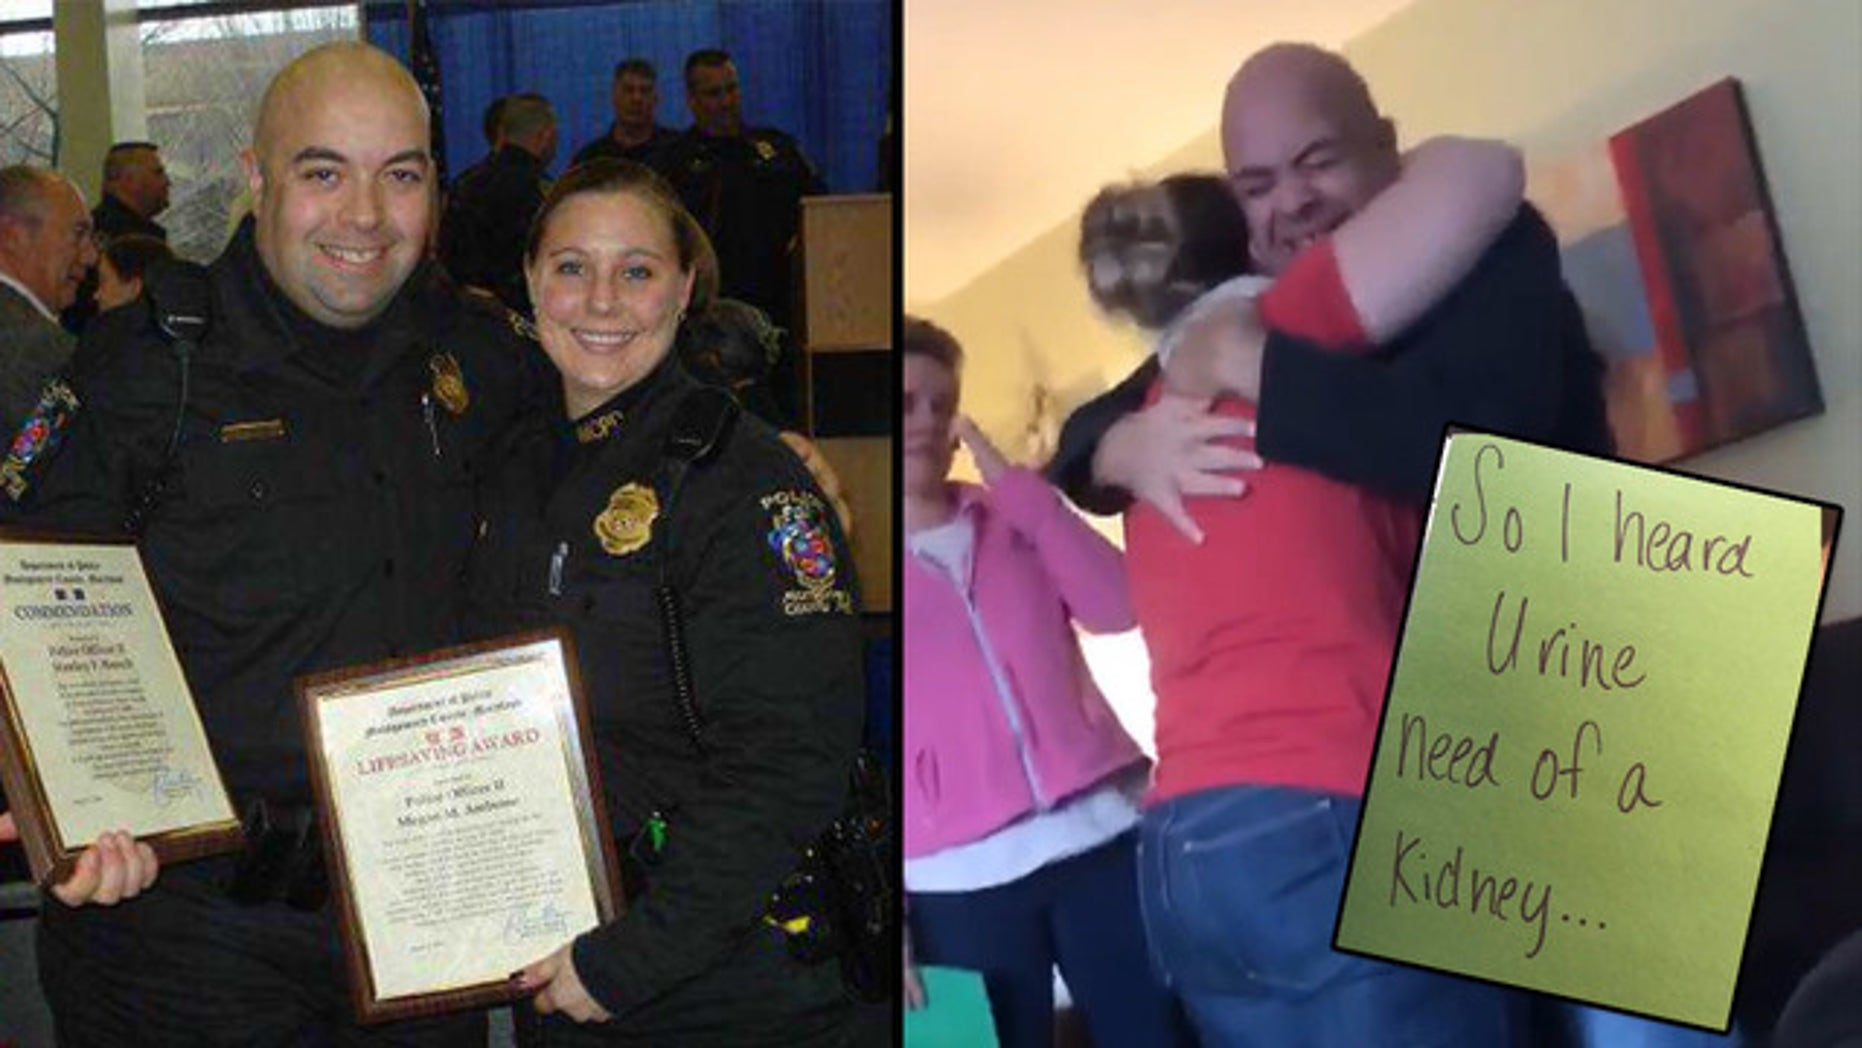 Megan Ambrose and Stan Barsch are retired Montgomery County police officers and former beat partners.